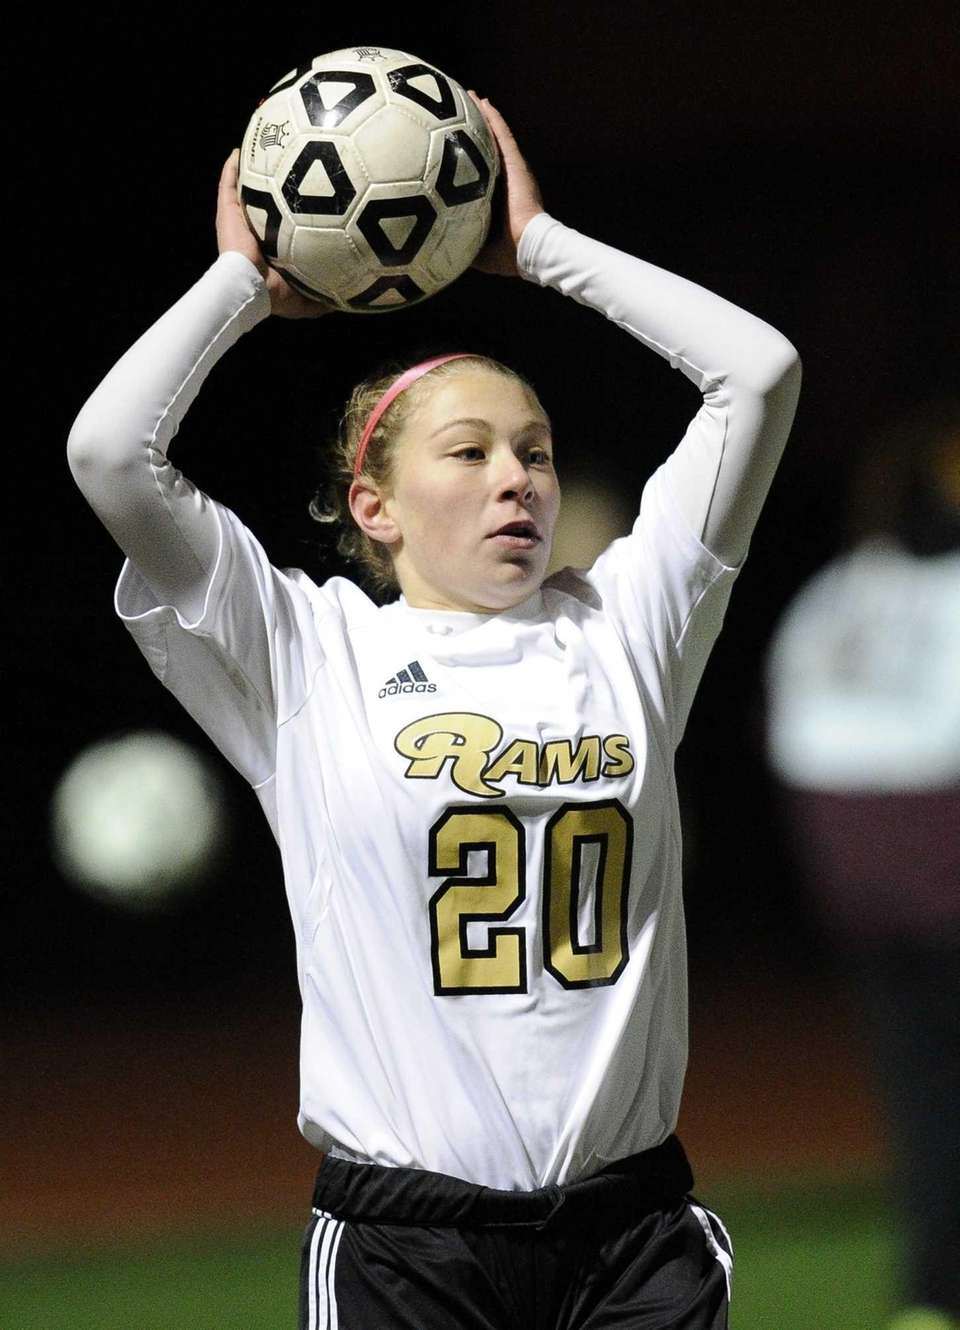 Nassau County's Taylor Freiermuth throws in the ball